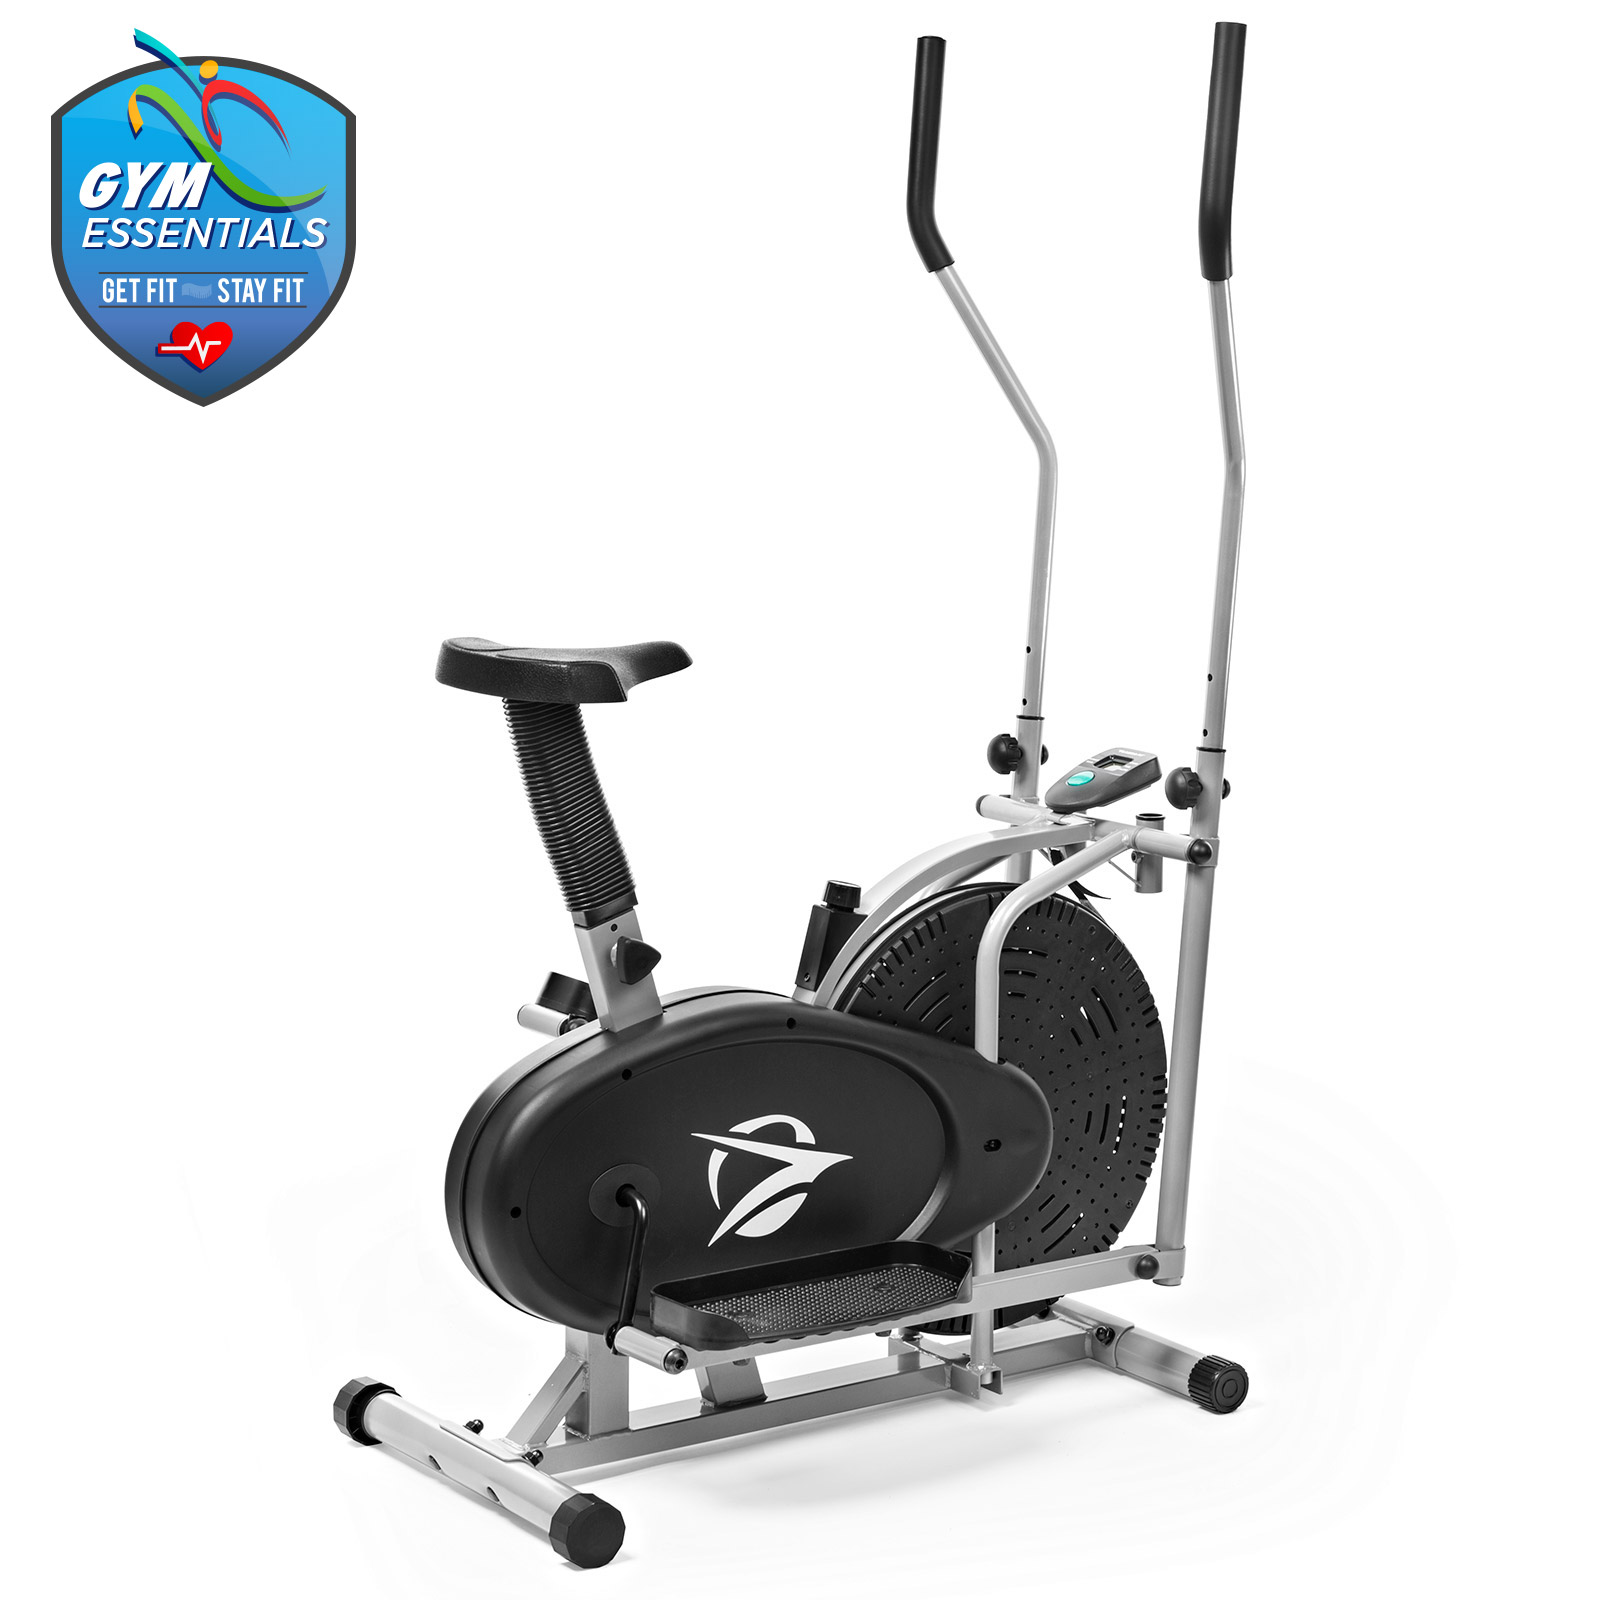 Elliptical Bike Ebay: Elliptical Machine Trainer 2 In 1 Exercise Bike Compact